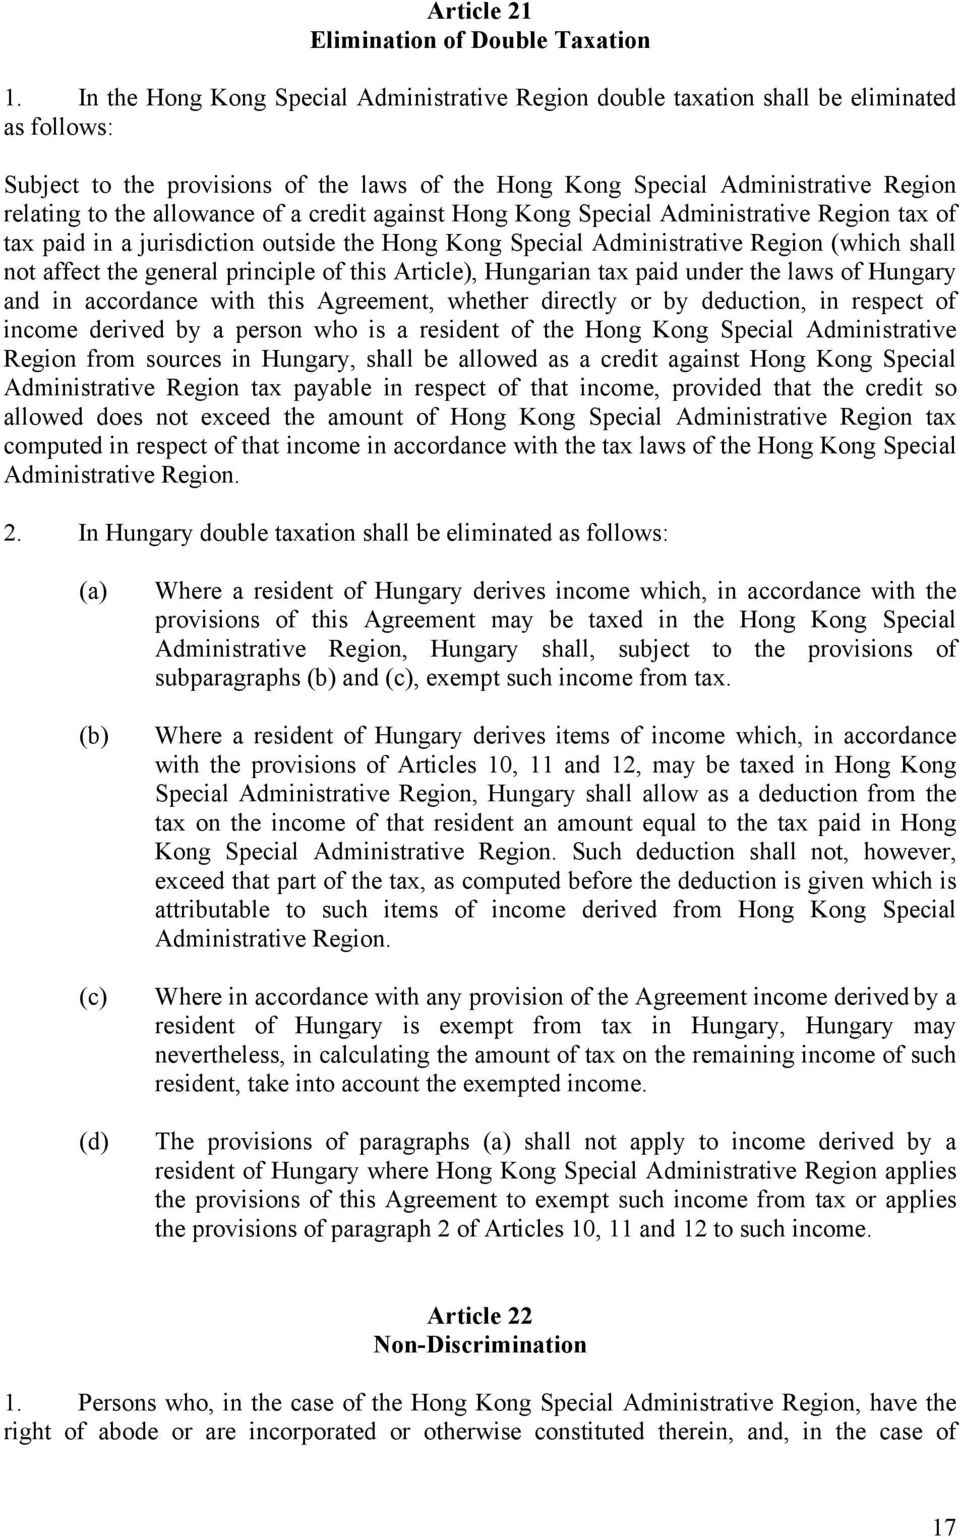 allowance of a credit against Hong Kong Special Administrative Region tax of tax paid in a jurisdiction outside the Hong Kong Special Administrative Region (which shall not affect the general